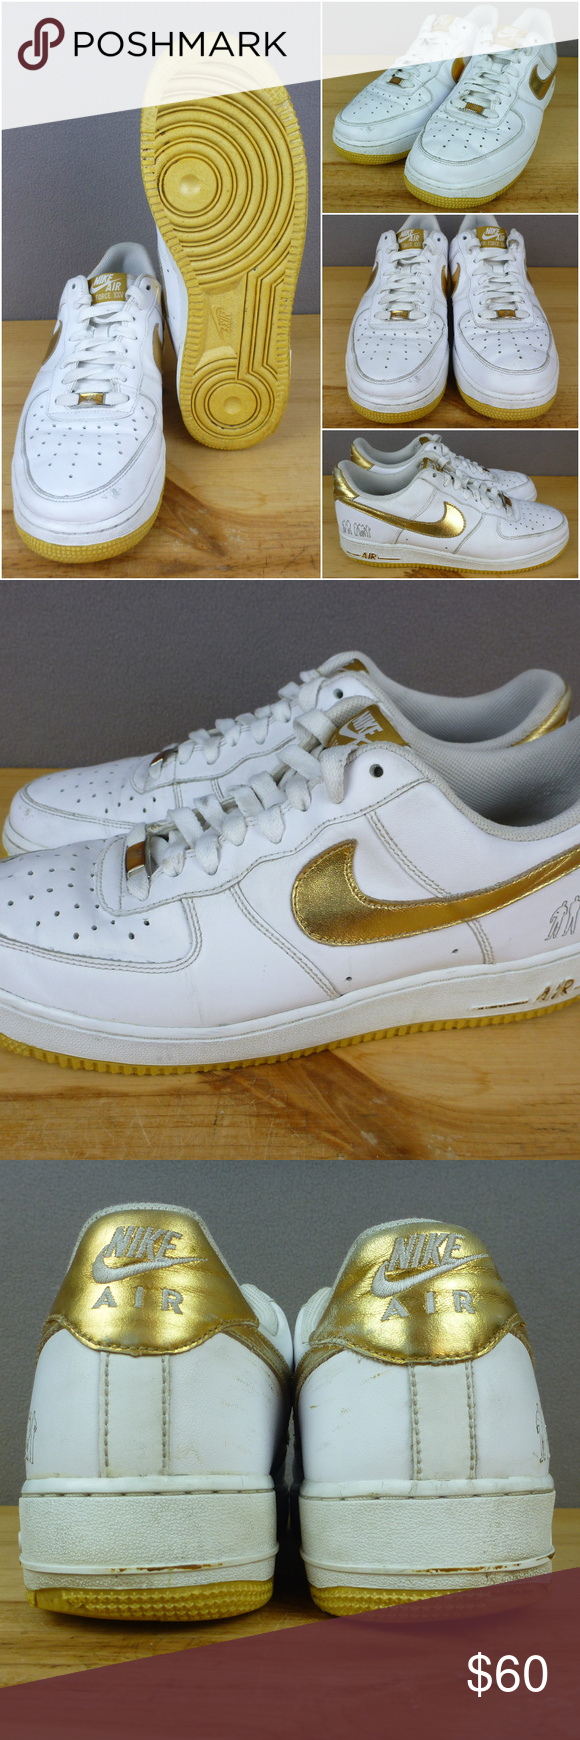 Nike Air Force 1 Low Players Edition 315092 171 Nike Men's